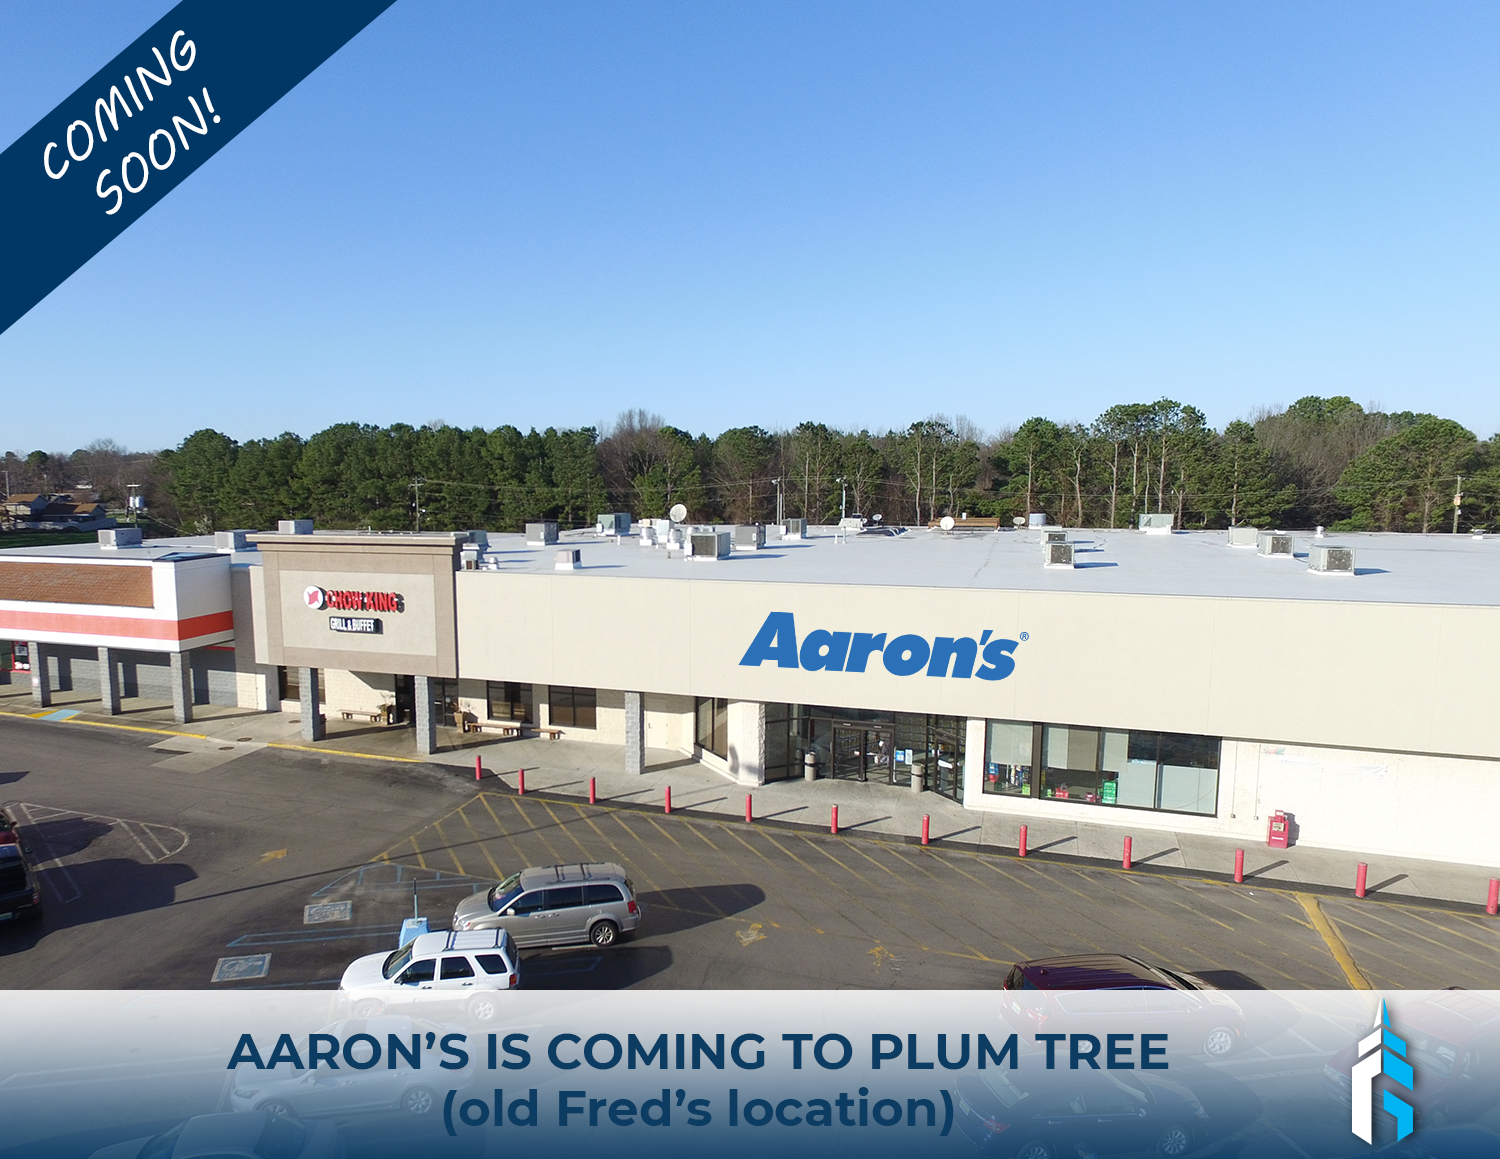 Aarons coming to Plum Tree